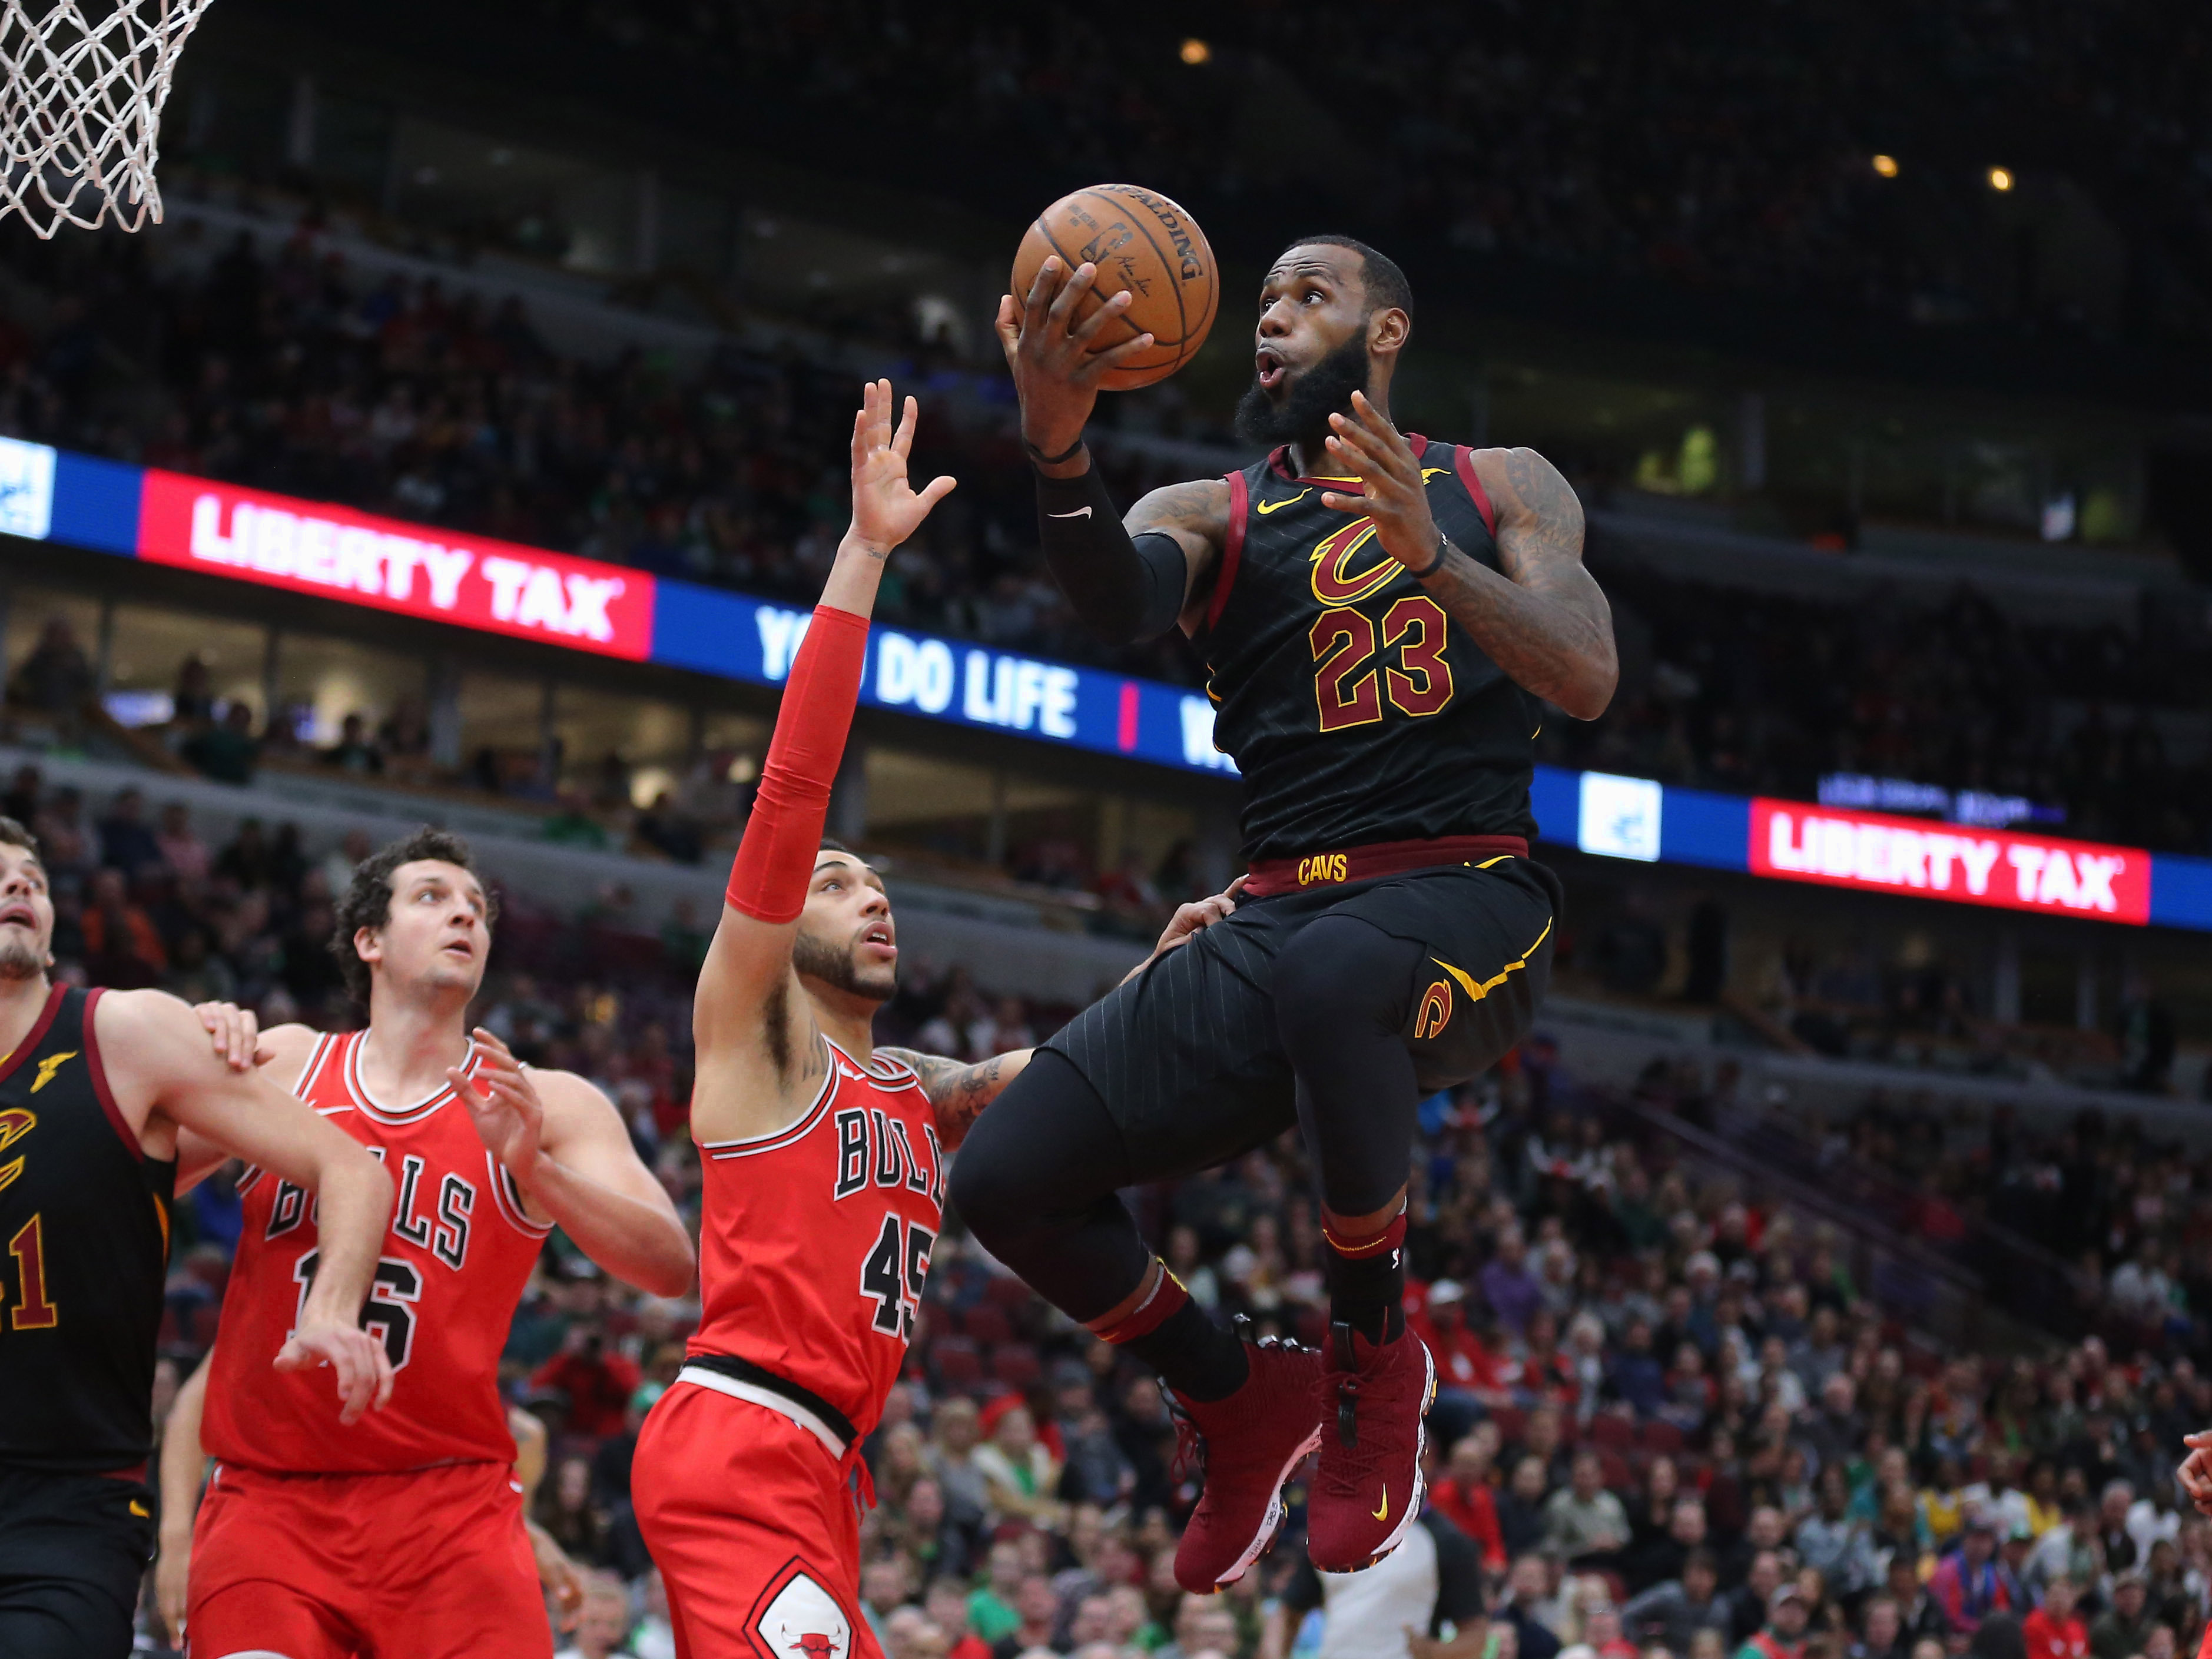 Basket - NBA - Grâce à un LeBron James intenable, Cleveland se rassure